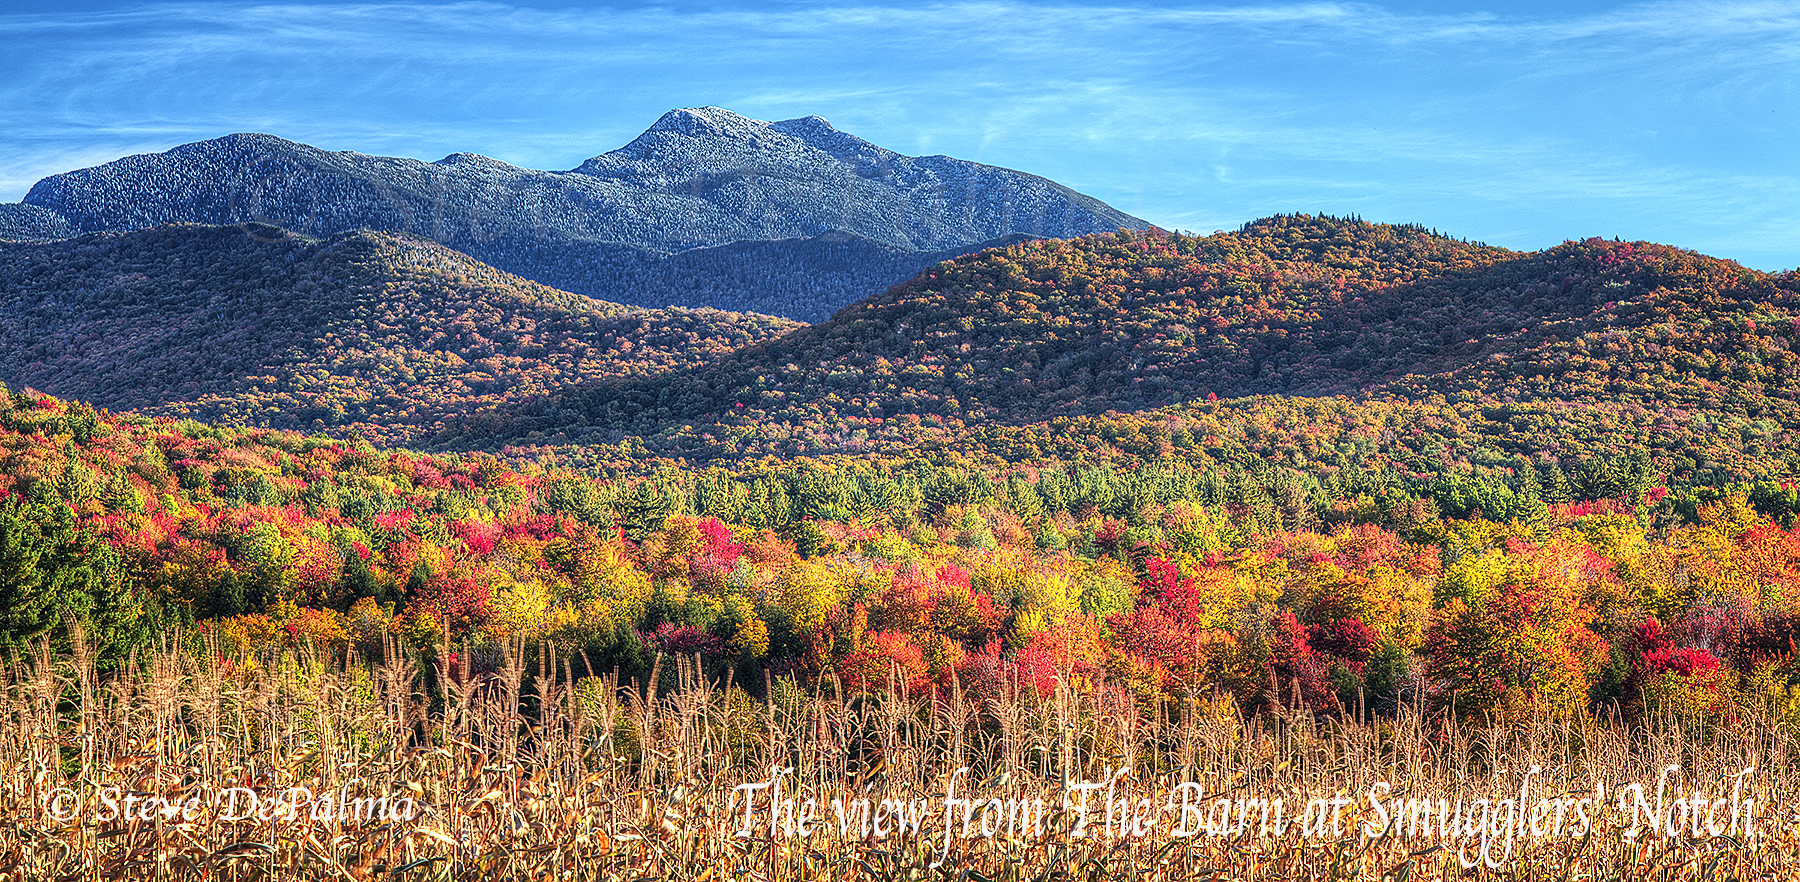 Fall 2015 Fall Foliage views of Mt Mansfield. The most picturesque location for your Stowe Wedding.